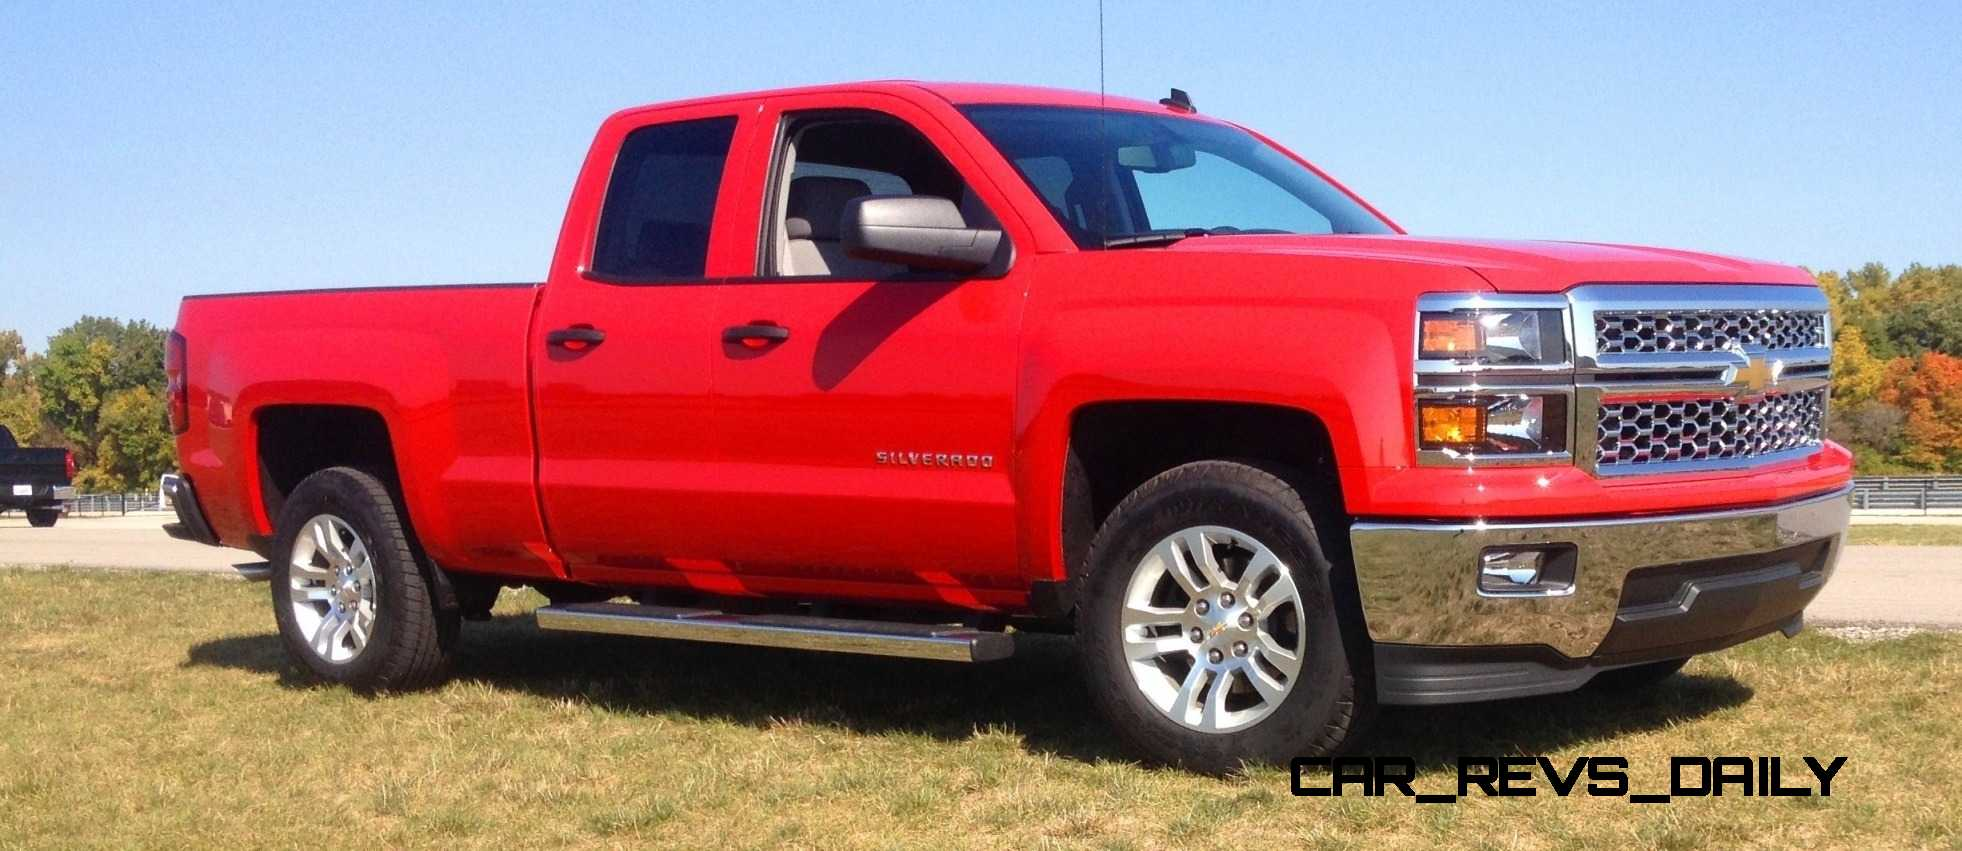 2014 Silverado 1500 LT An All-Star Truck for All Seasons - Mega Galleries59